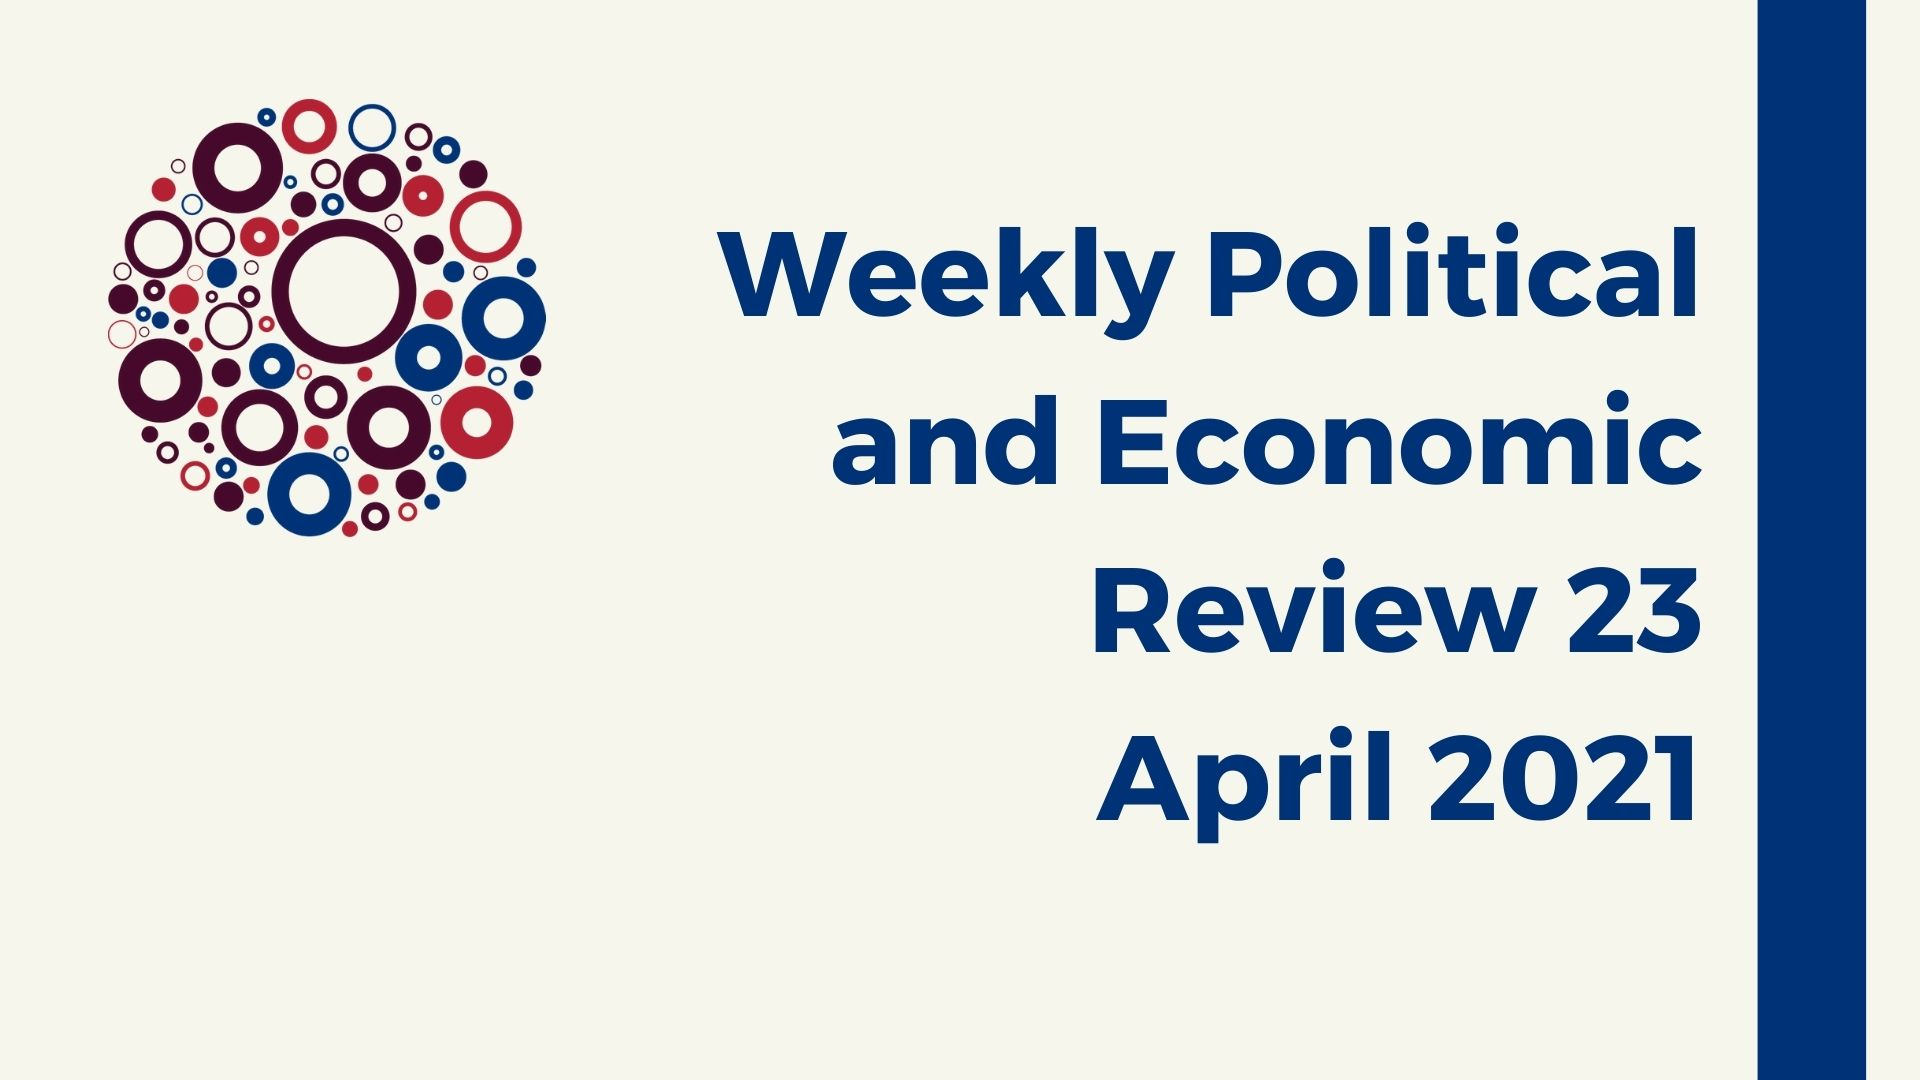 Weekly Political and Economic 23 April 2021